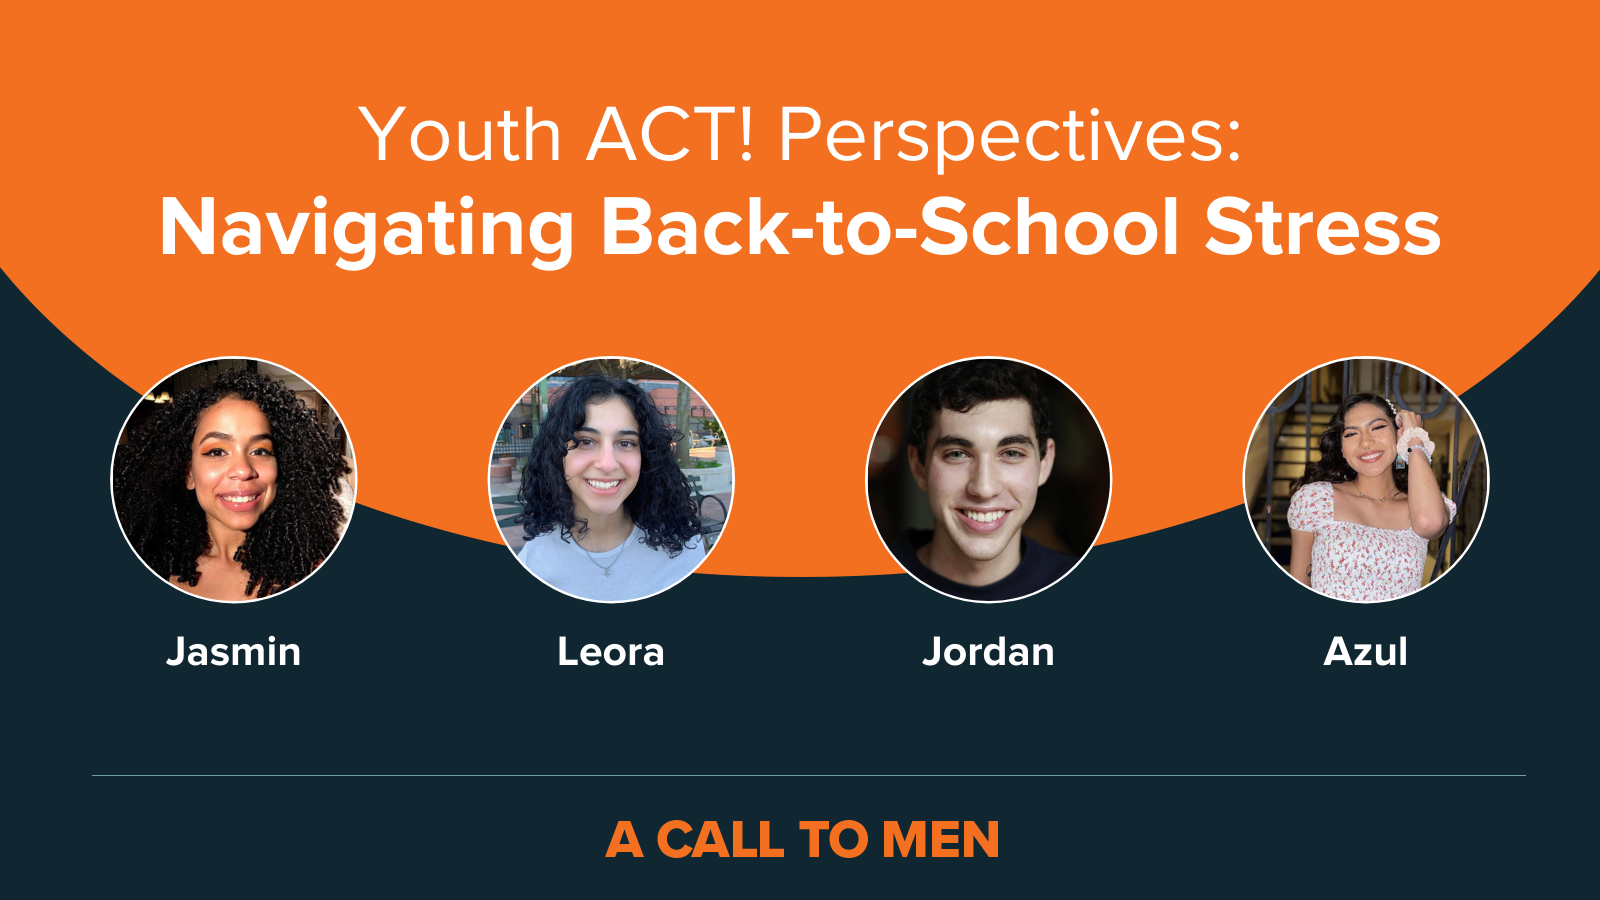 Youth ACT! Perspectives on Back-To-School Stress